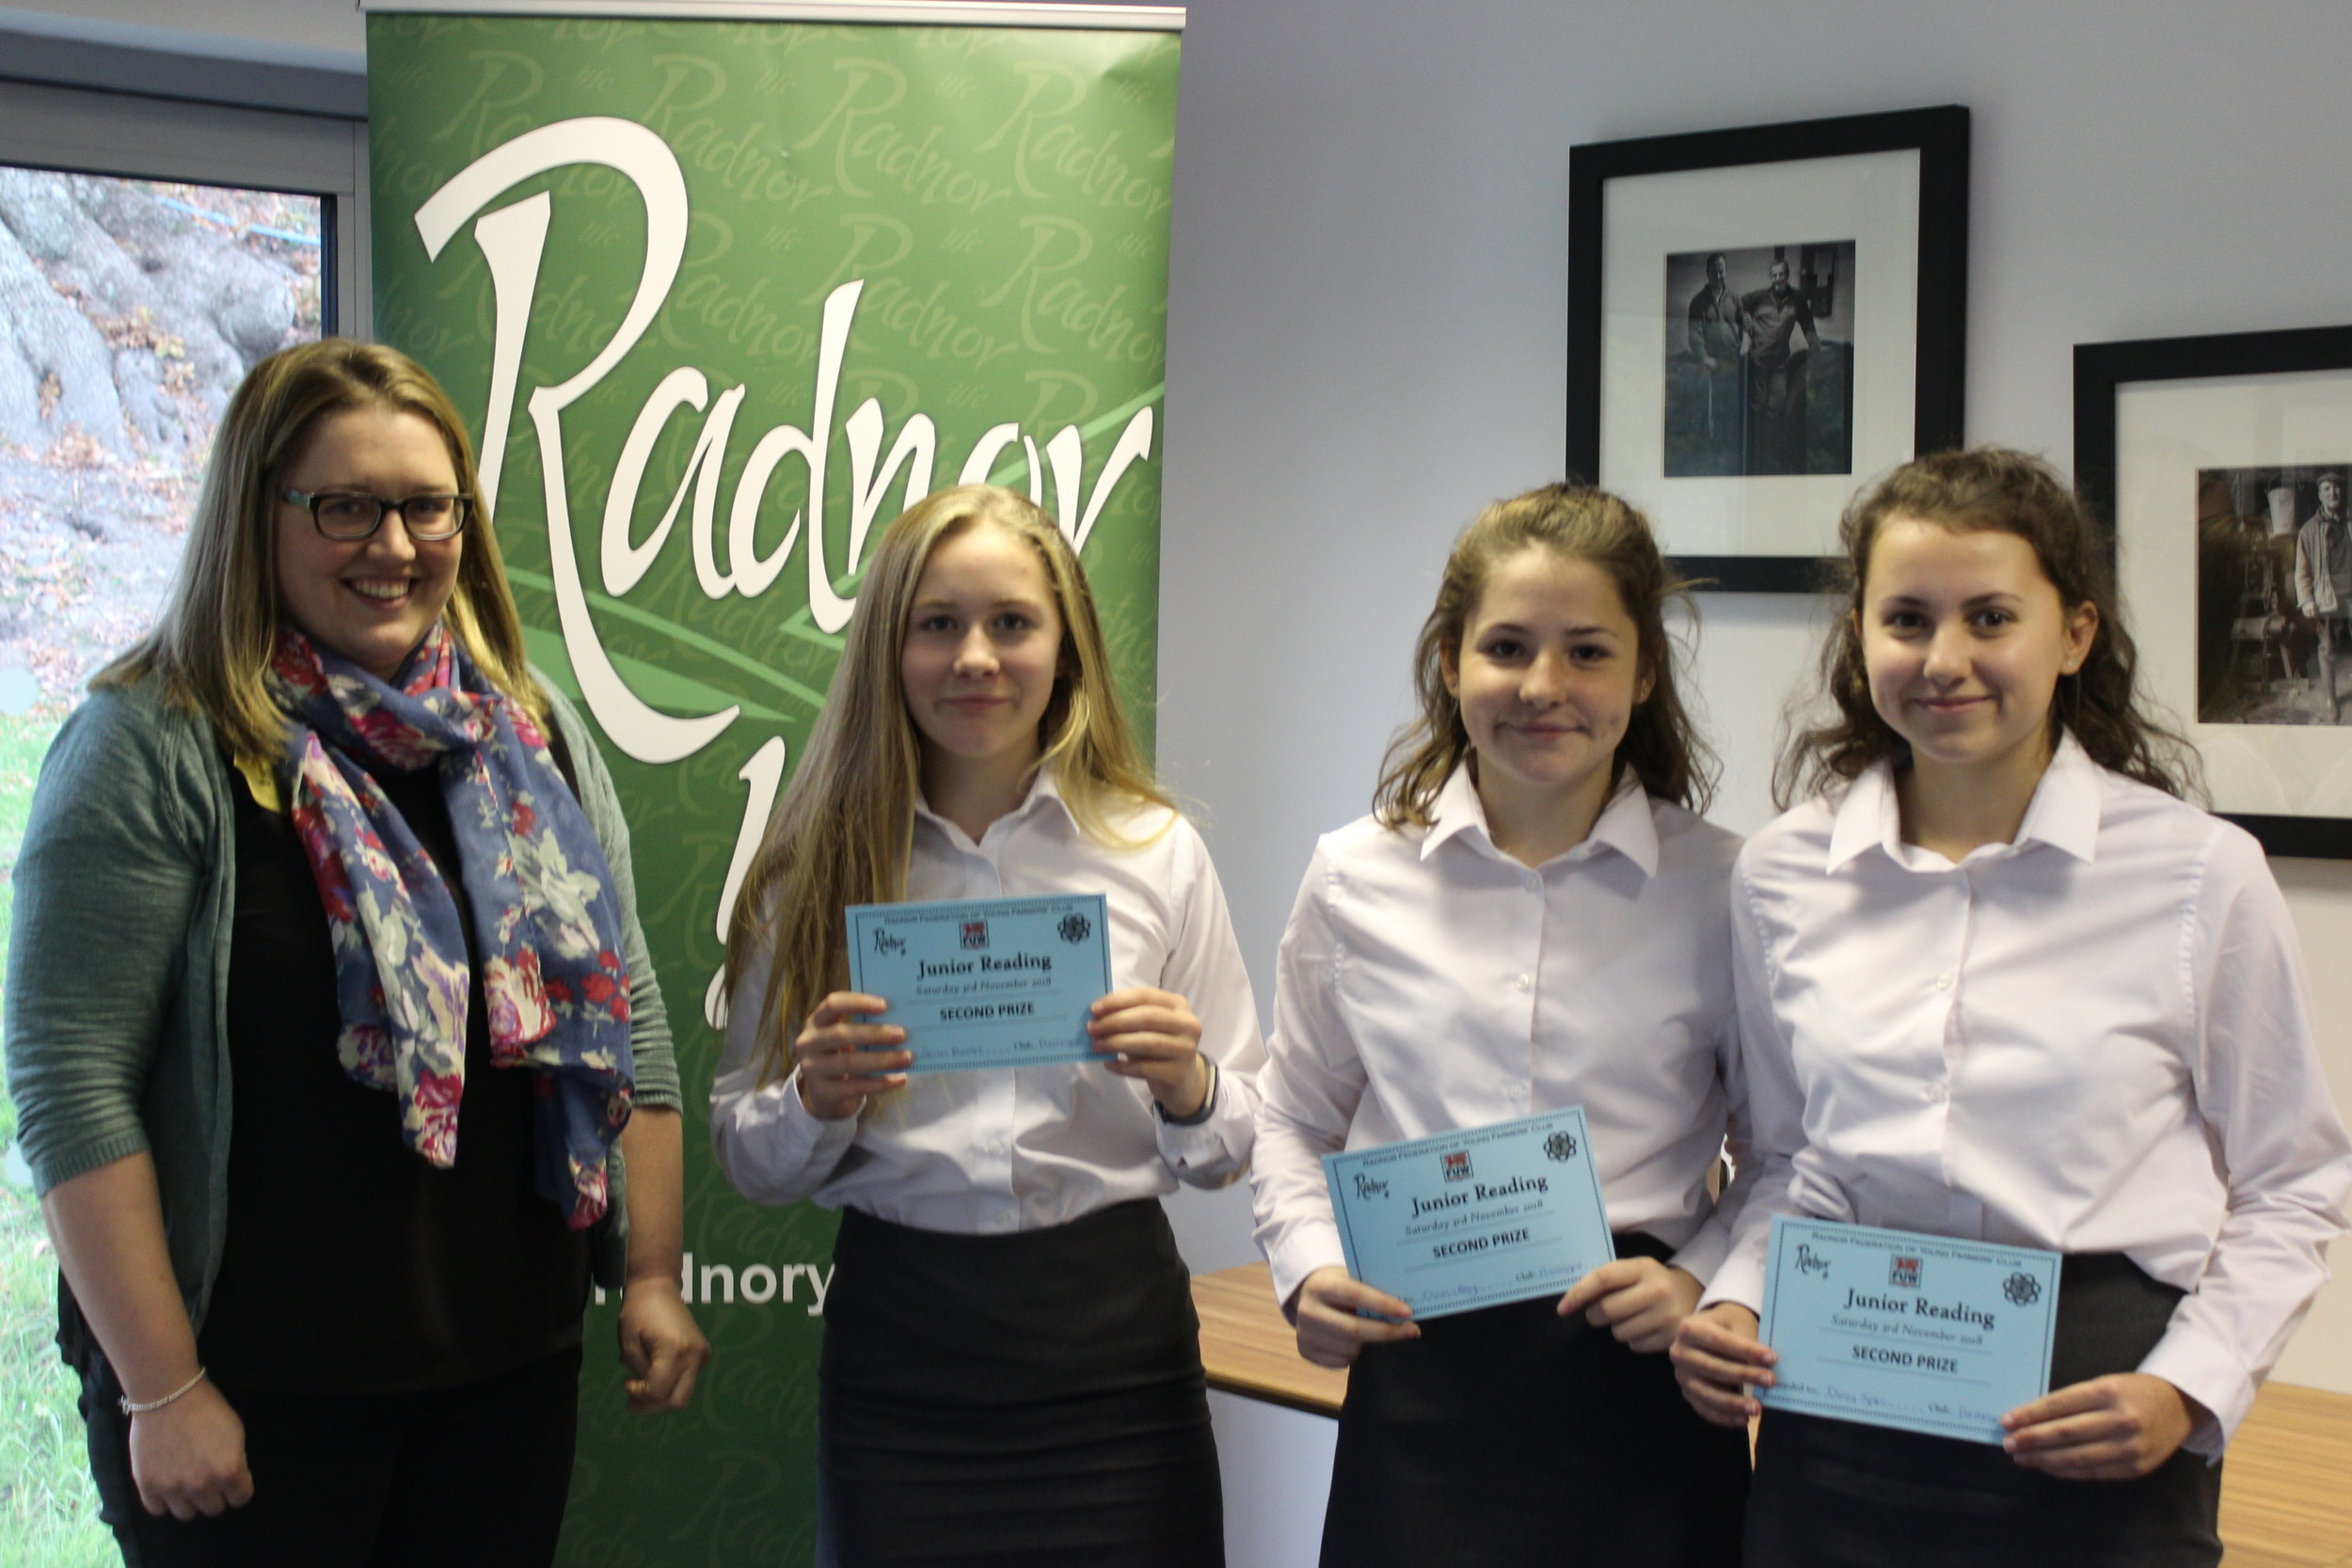 2nd Place in the Junior Reading Competition, Presteigne YFC with Judge Emily Bevan